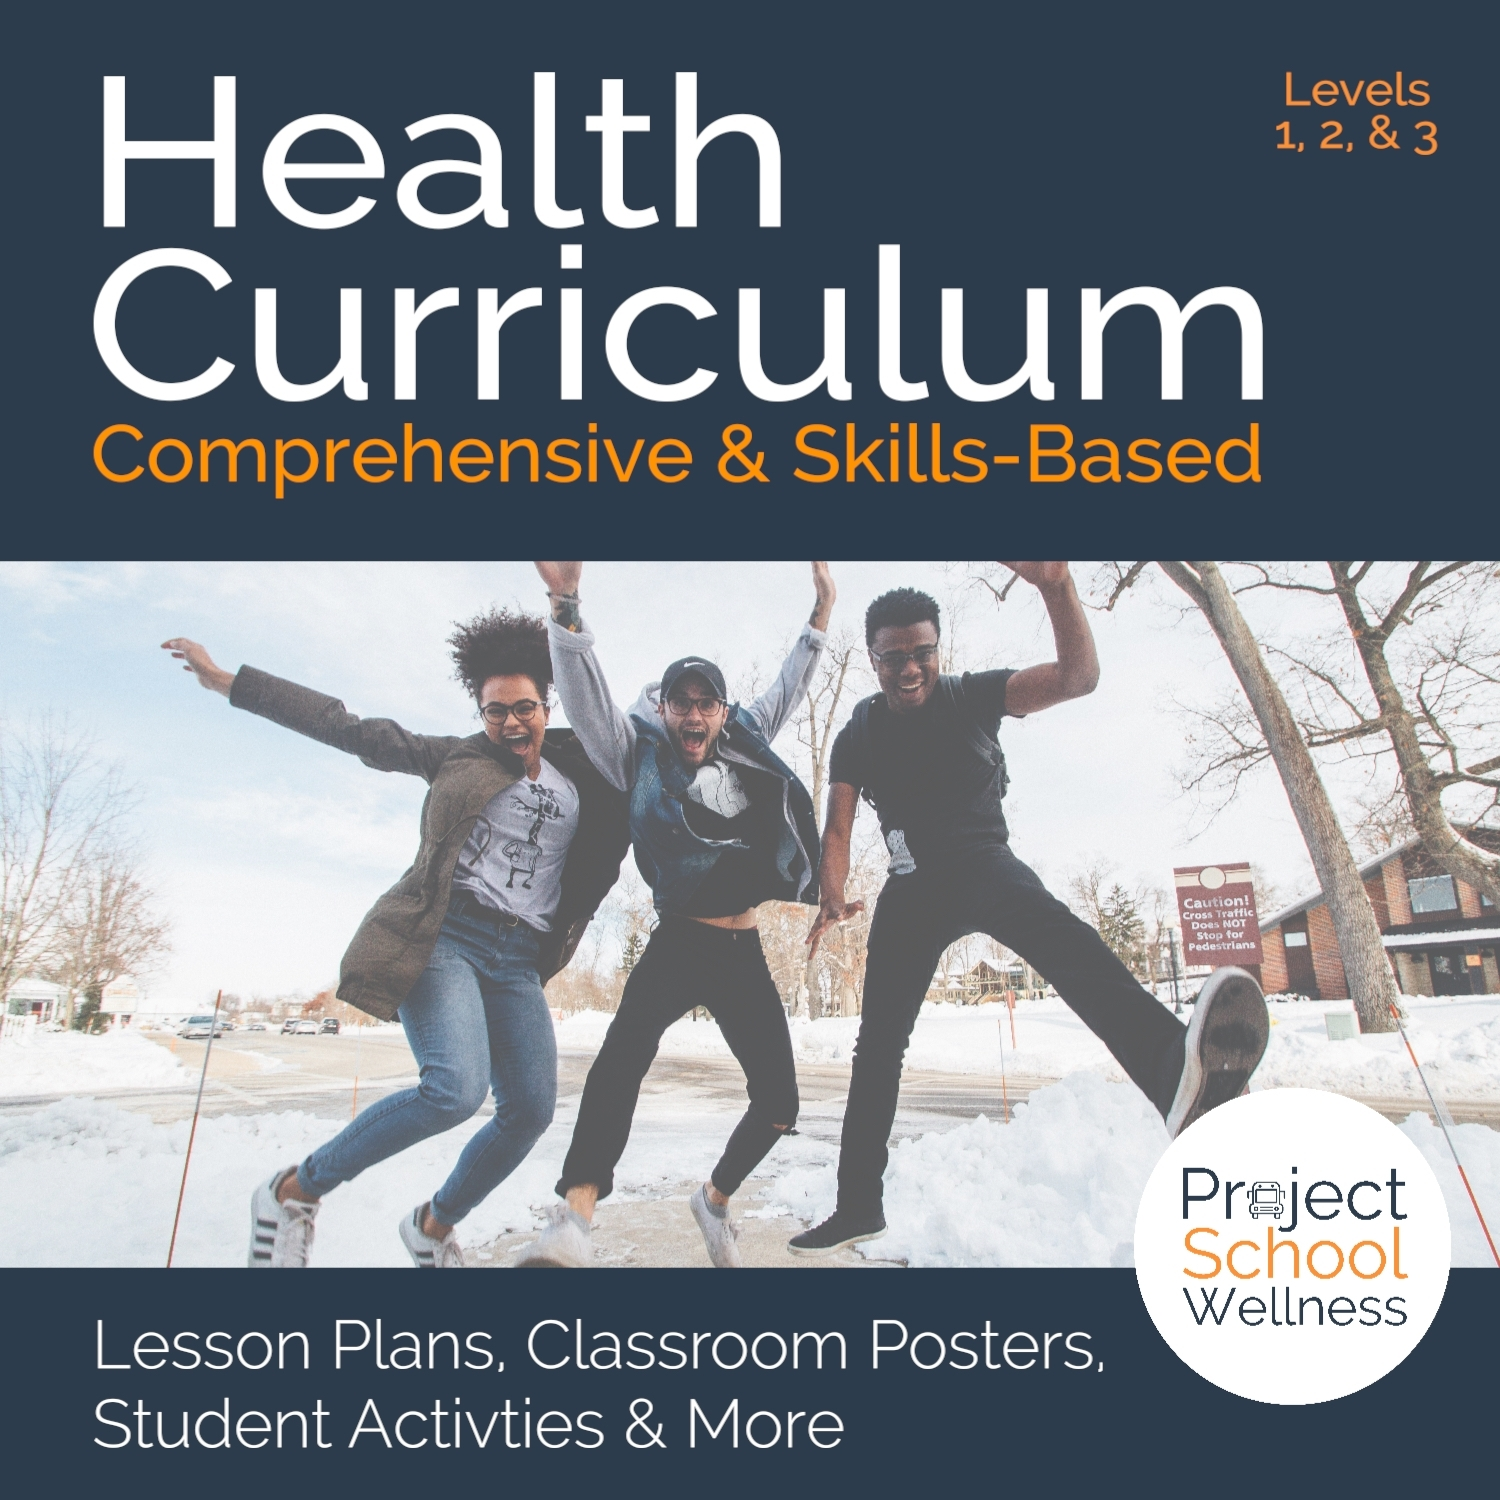 Project School Wellness Store - MIddle School Health Curriculum - Health lesson plans for middle school desgined by a health teacher and aligned to the National Health Standards. This health curriculum comes with hundreds of health assignments for middle school, health activities, and health worksheets all focused on teaching health skills. This is a comprehensive, skills-based health education curriulcum.